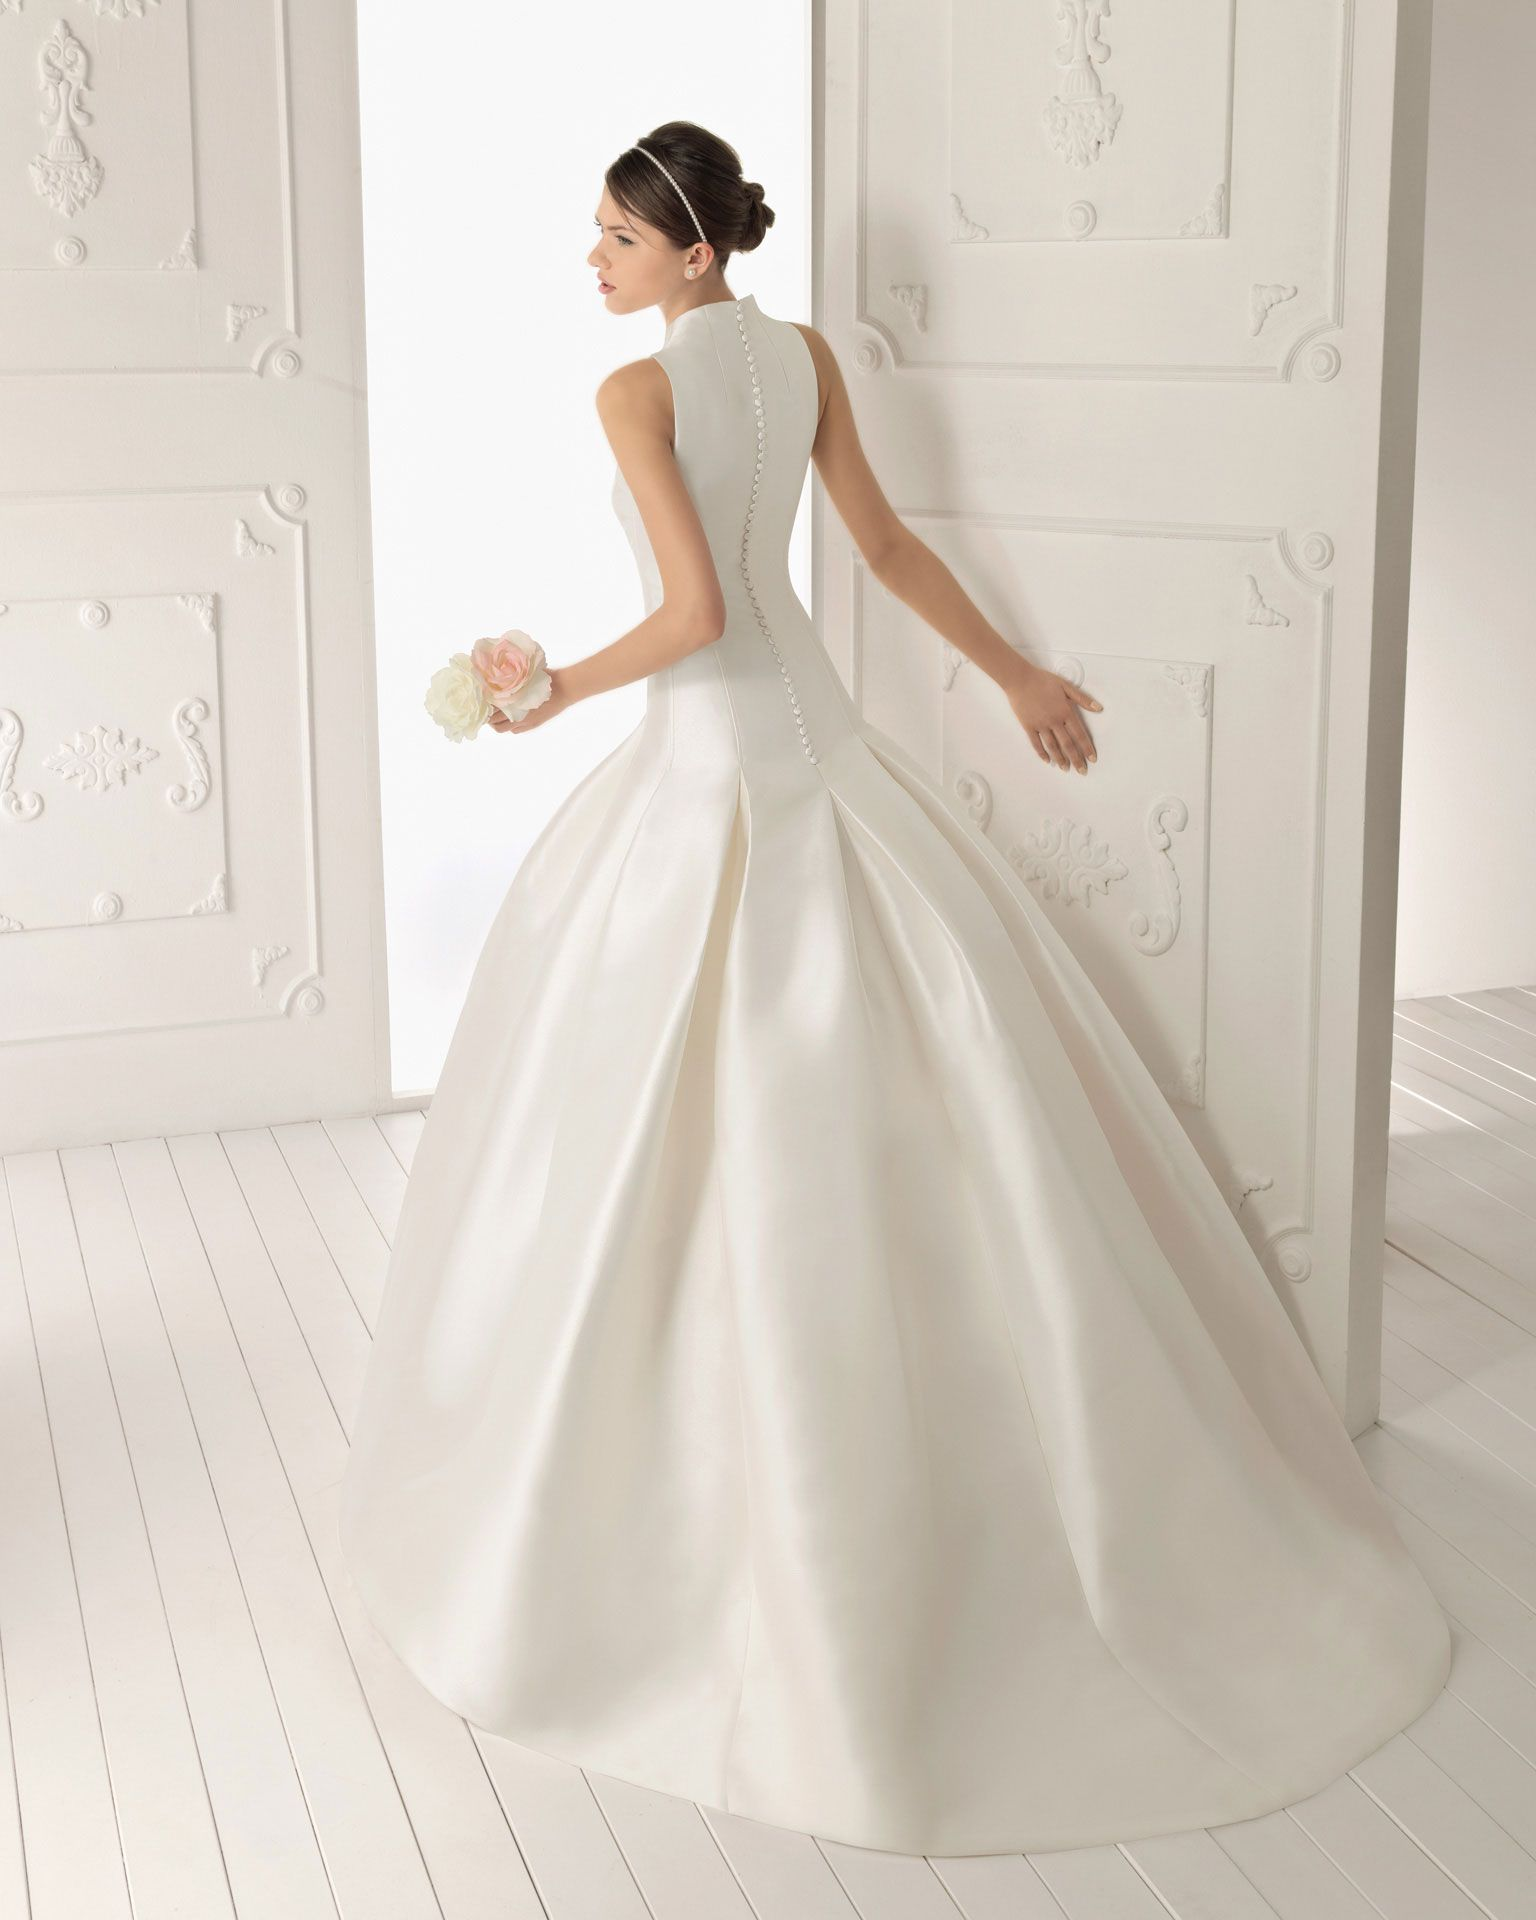 Simply Stunning 2017 Wedding Gown Tailored Is Tres Chic